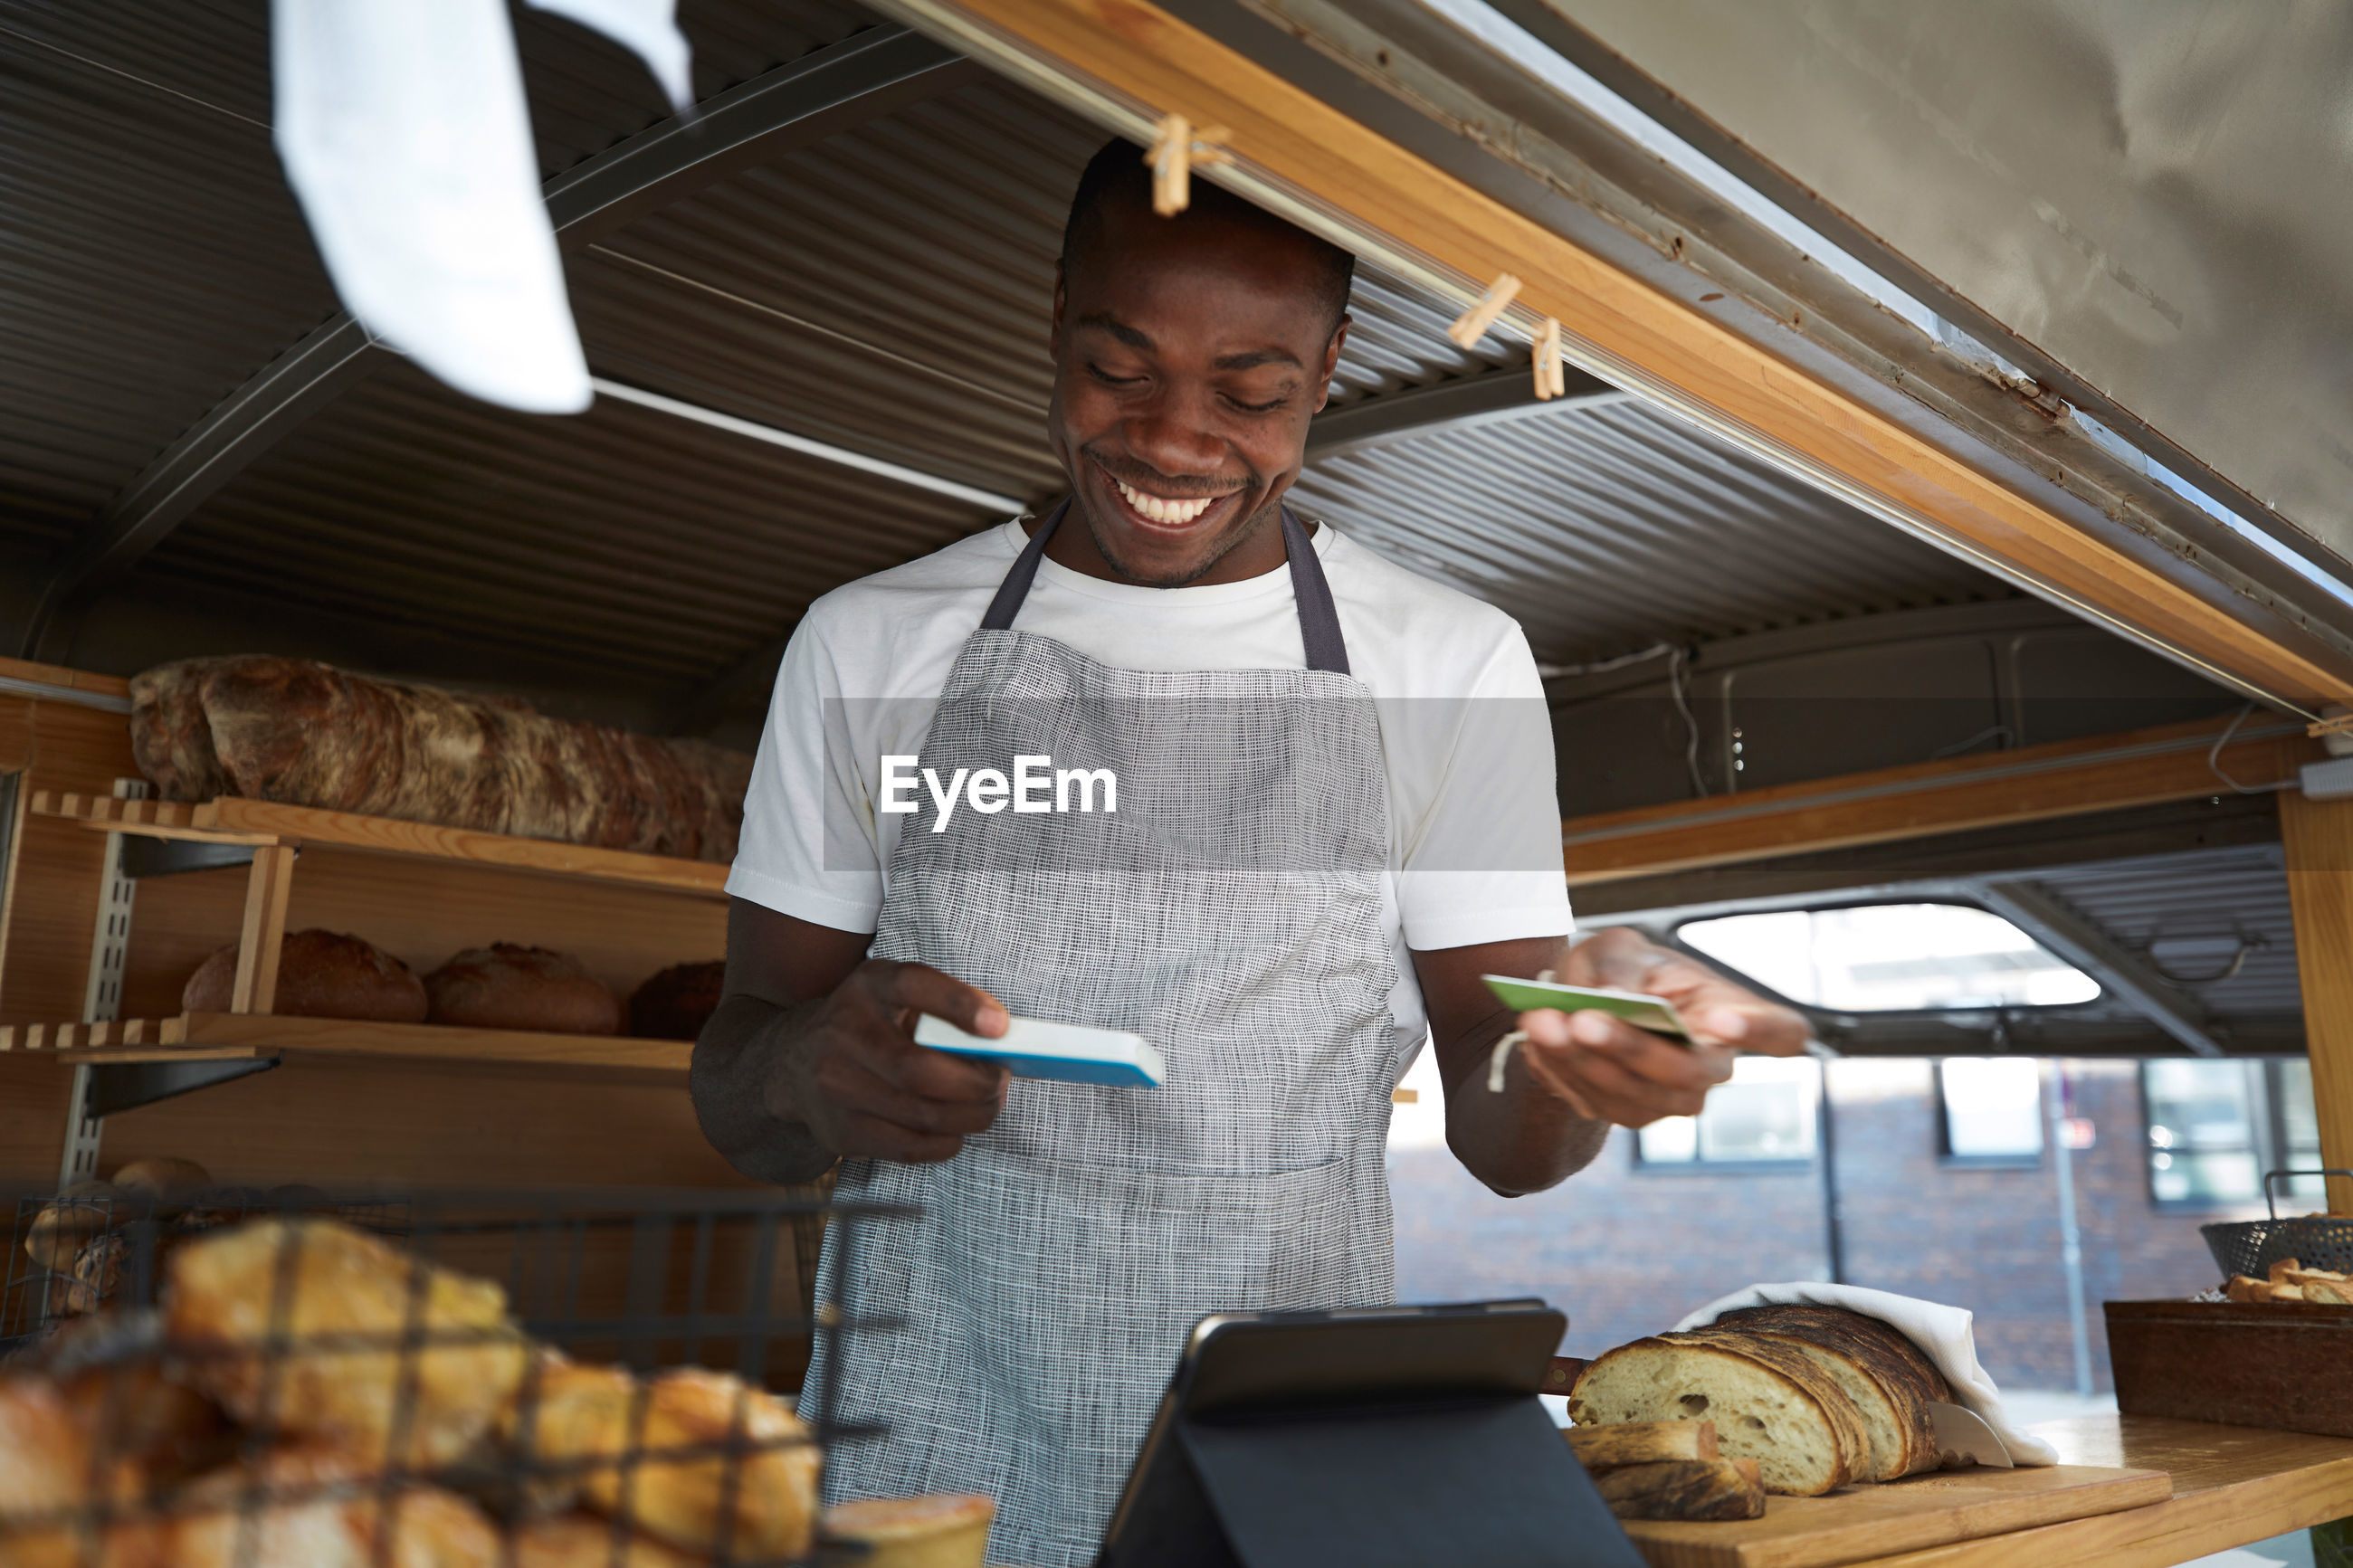 Smiling salesman holding credit card and reader in food truck